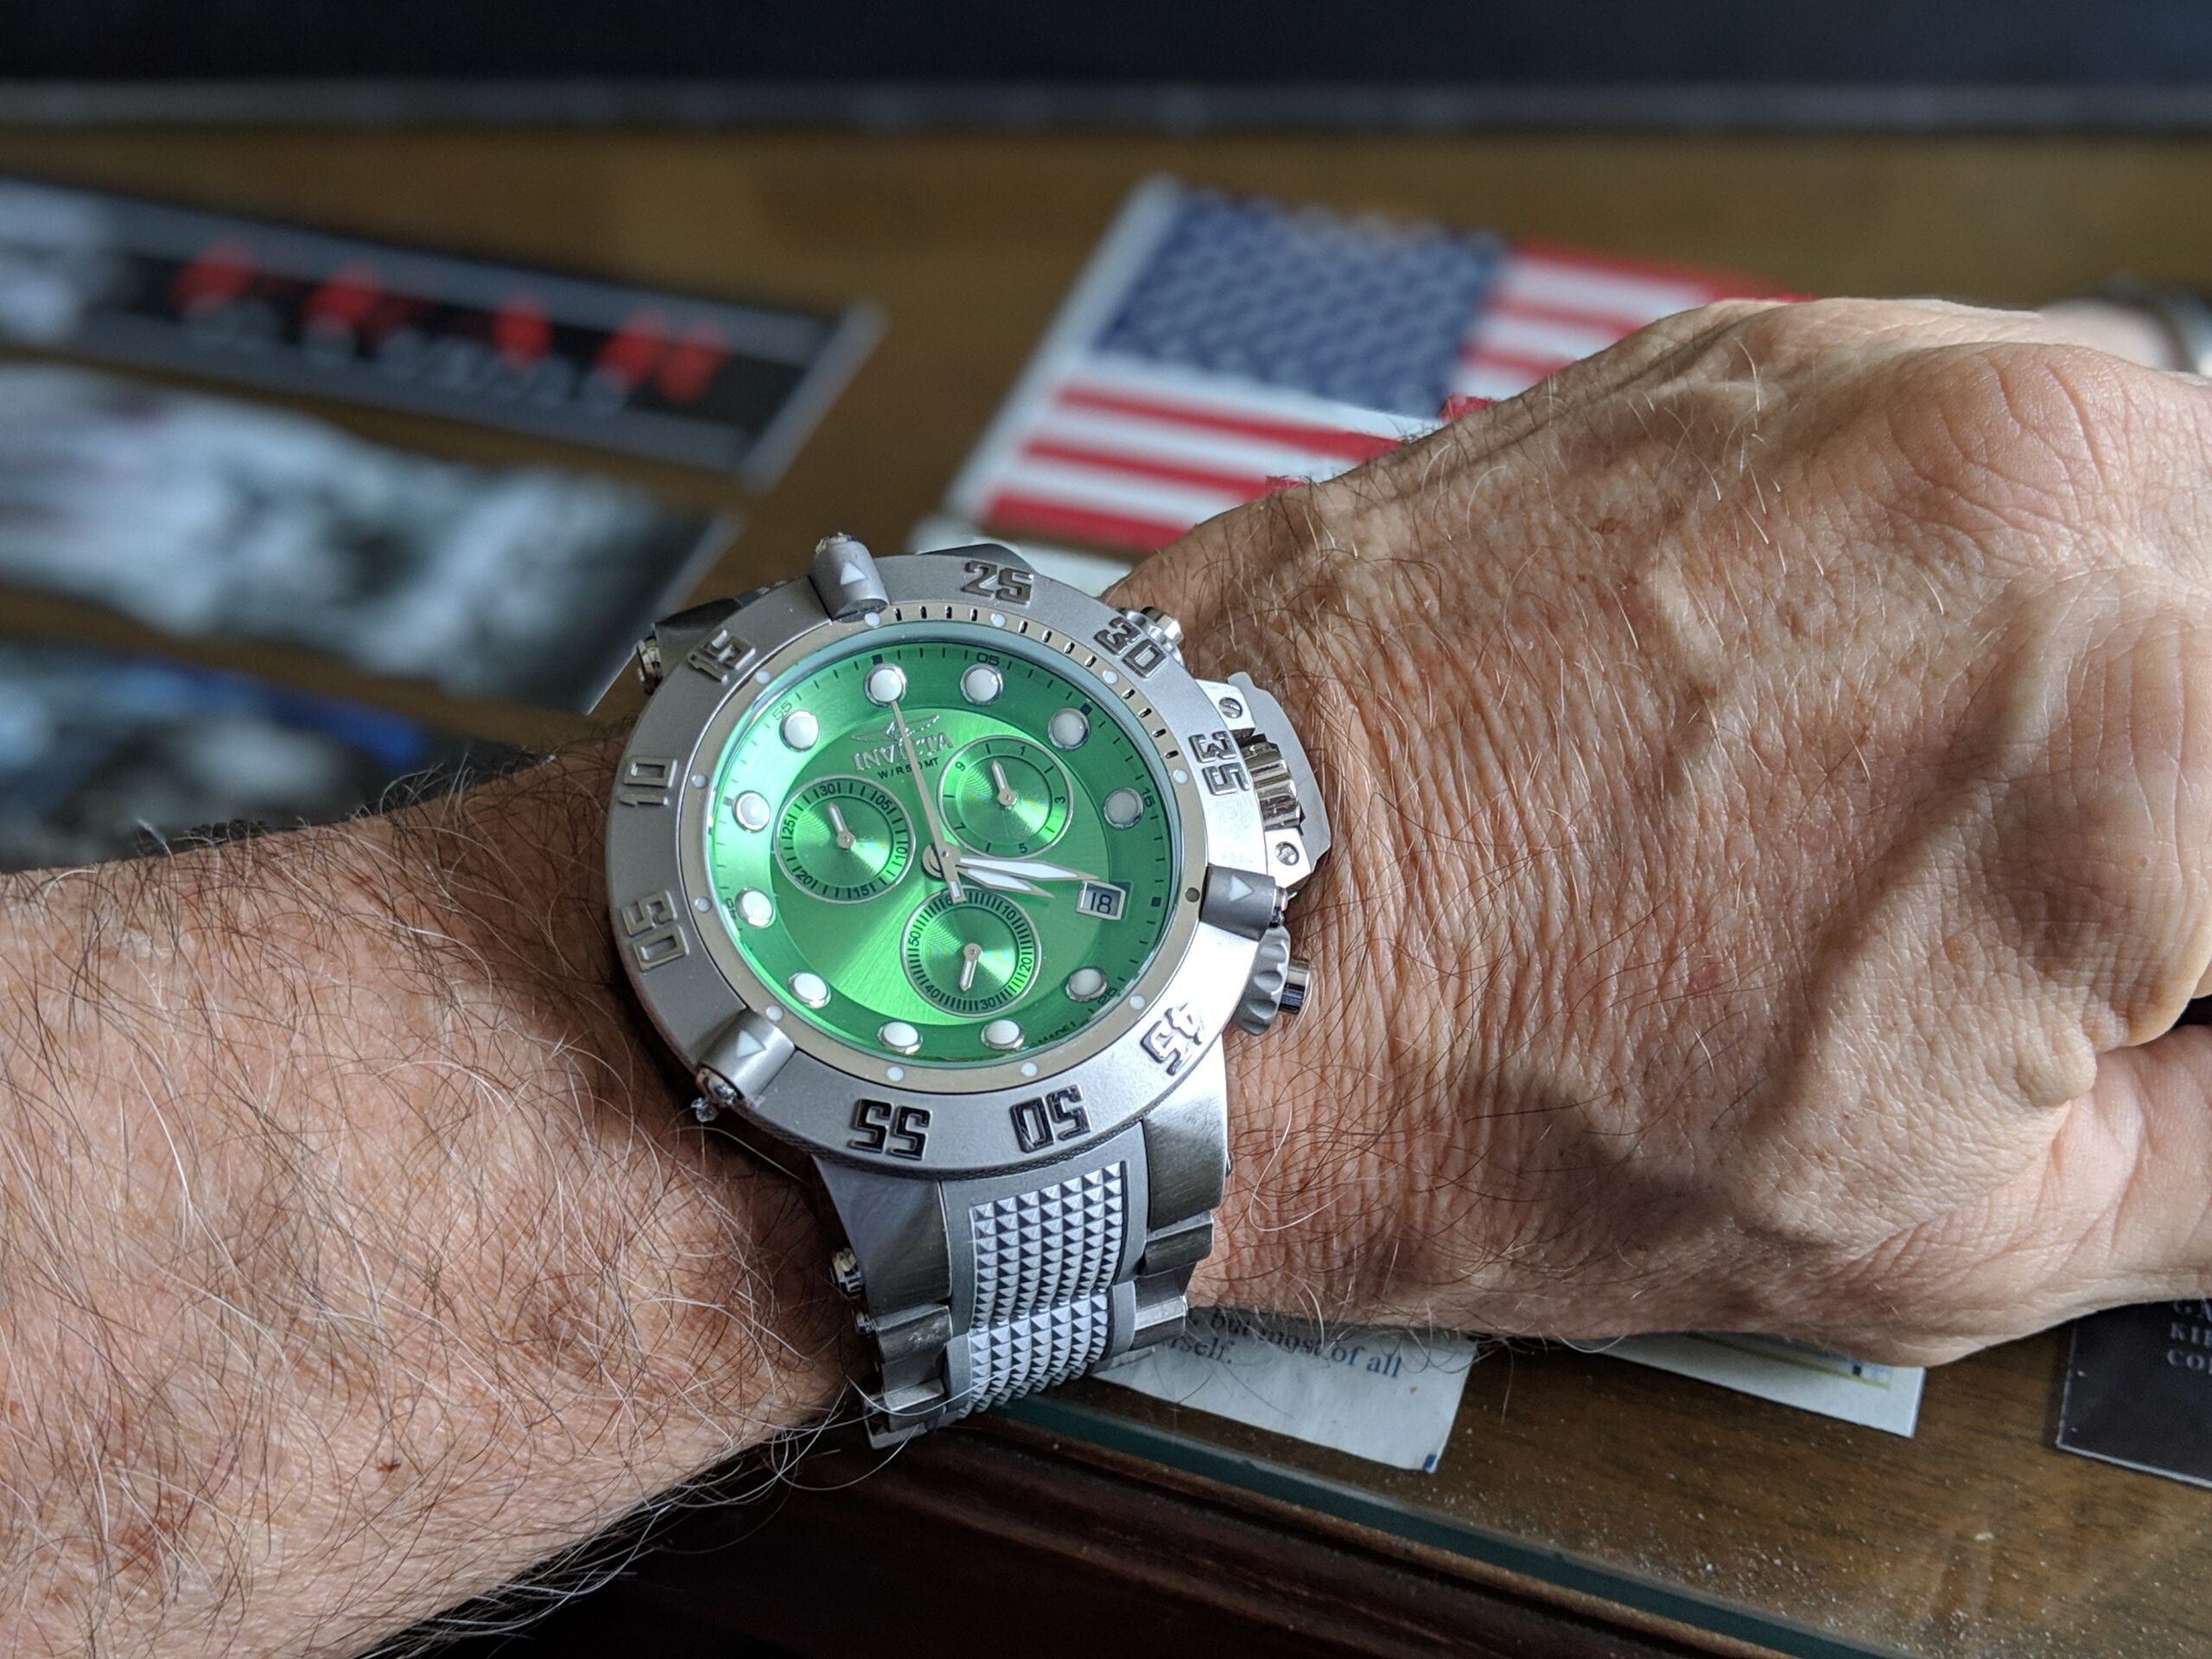 Invicta Watch with green face